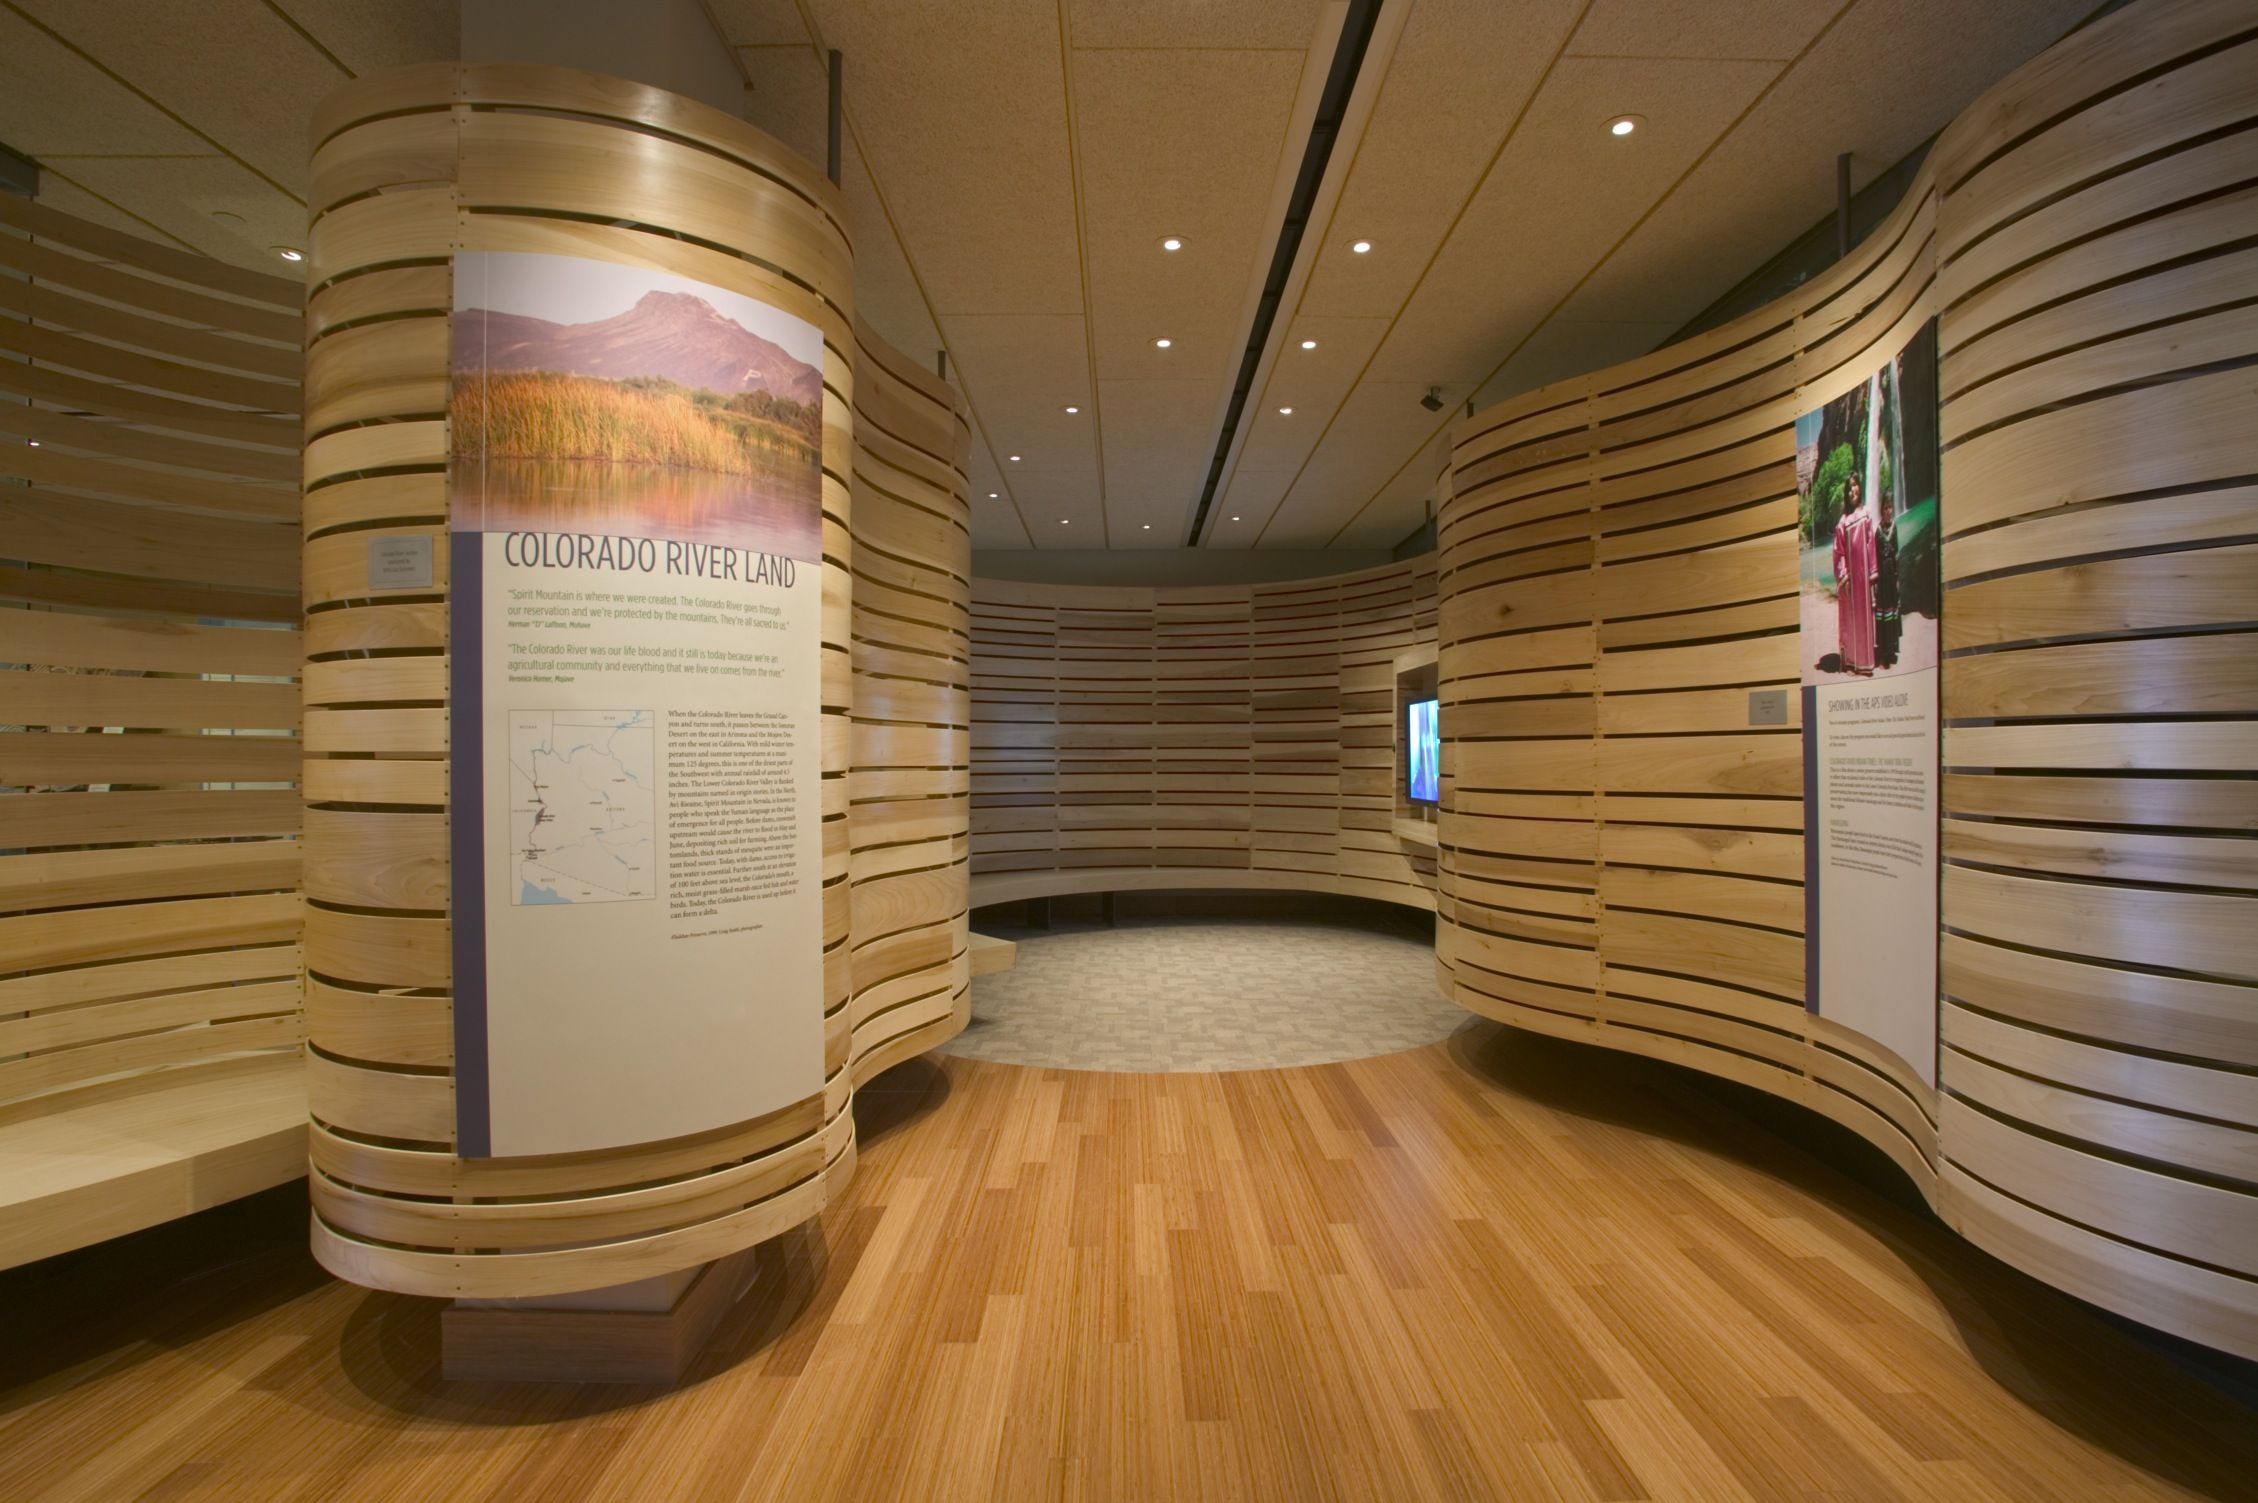 Curved wood walls integrated panels g a chm1 for Curved wall